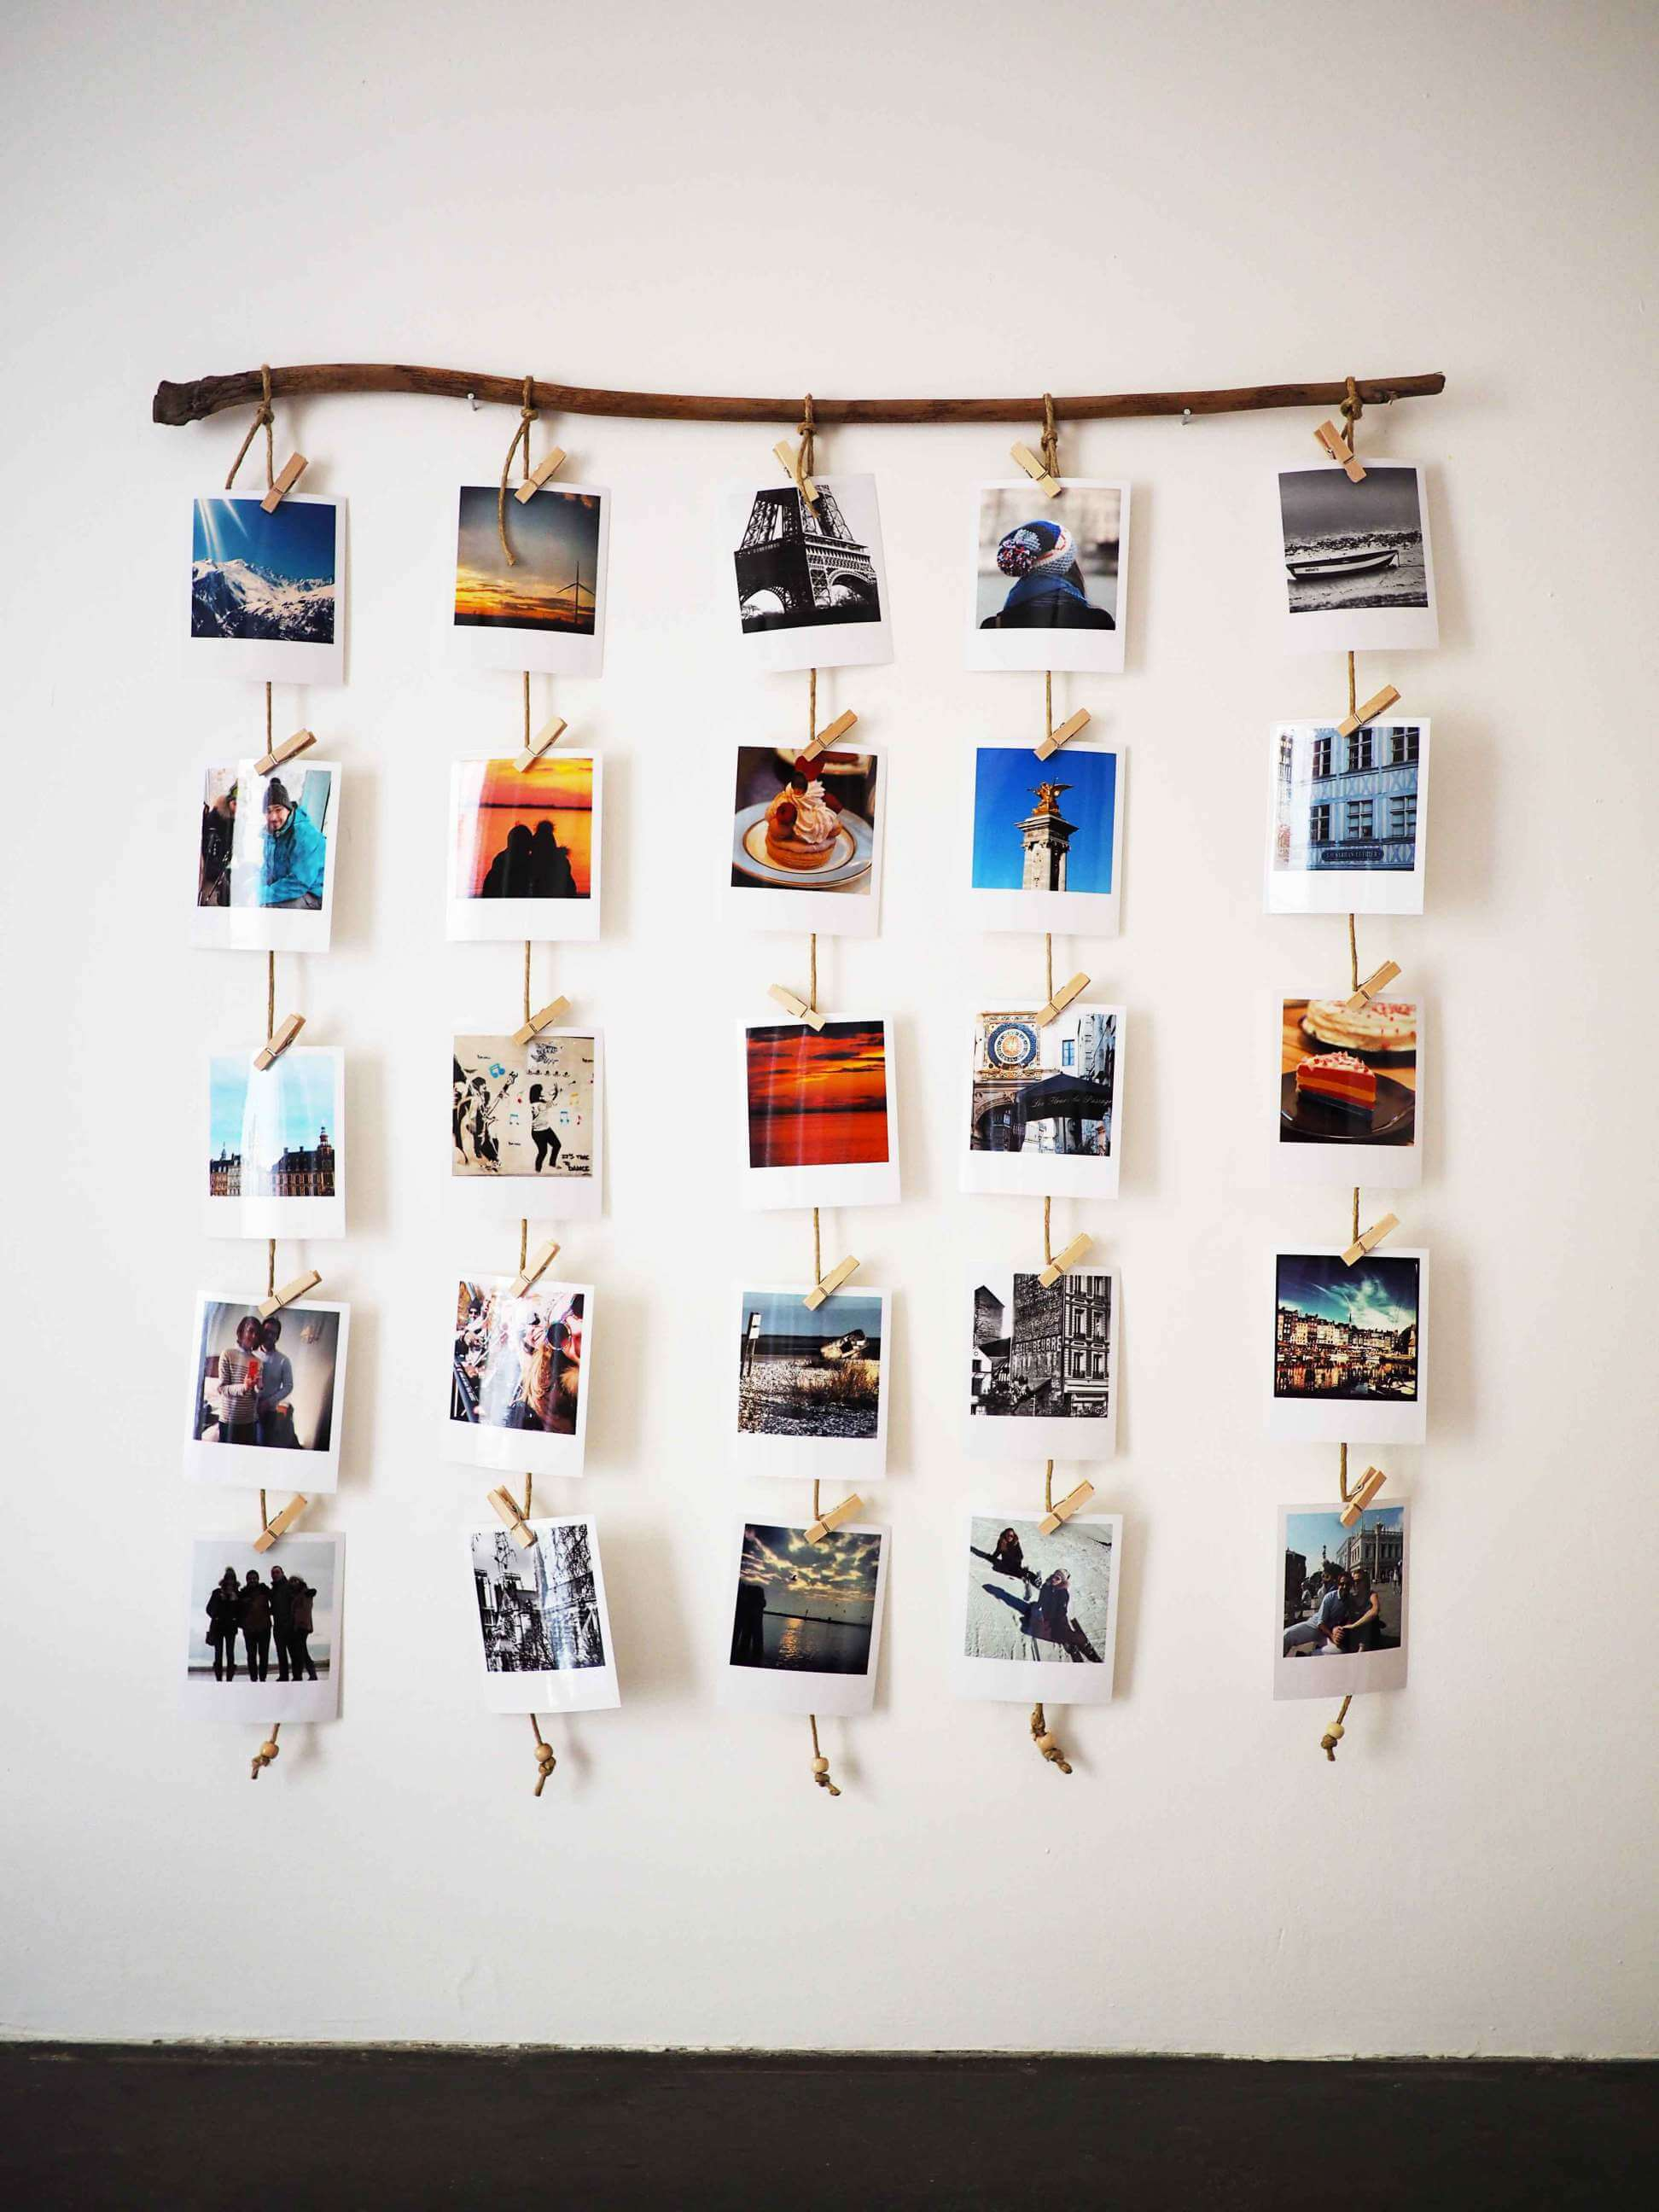 Hanging Polaroid Photo Display Project